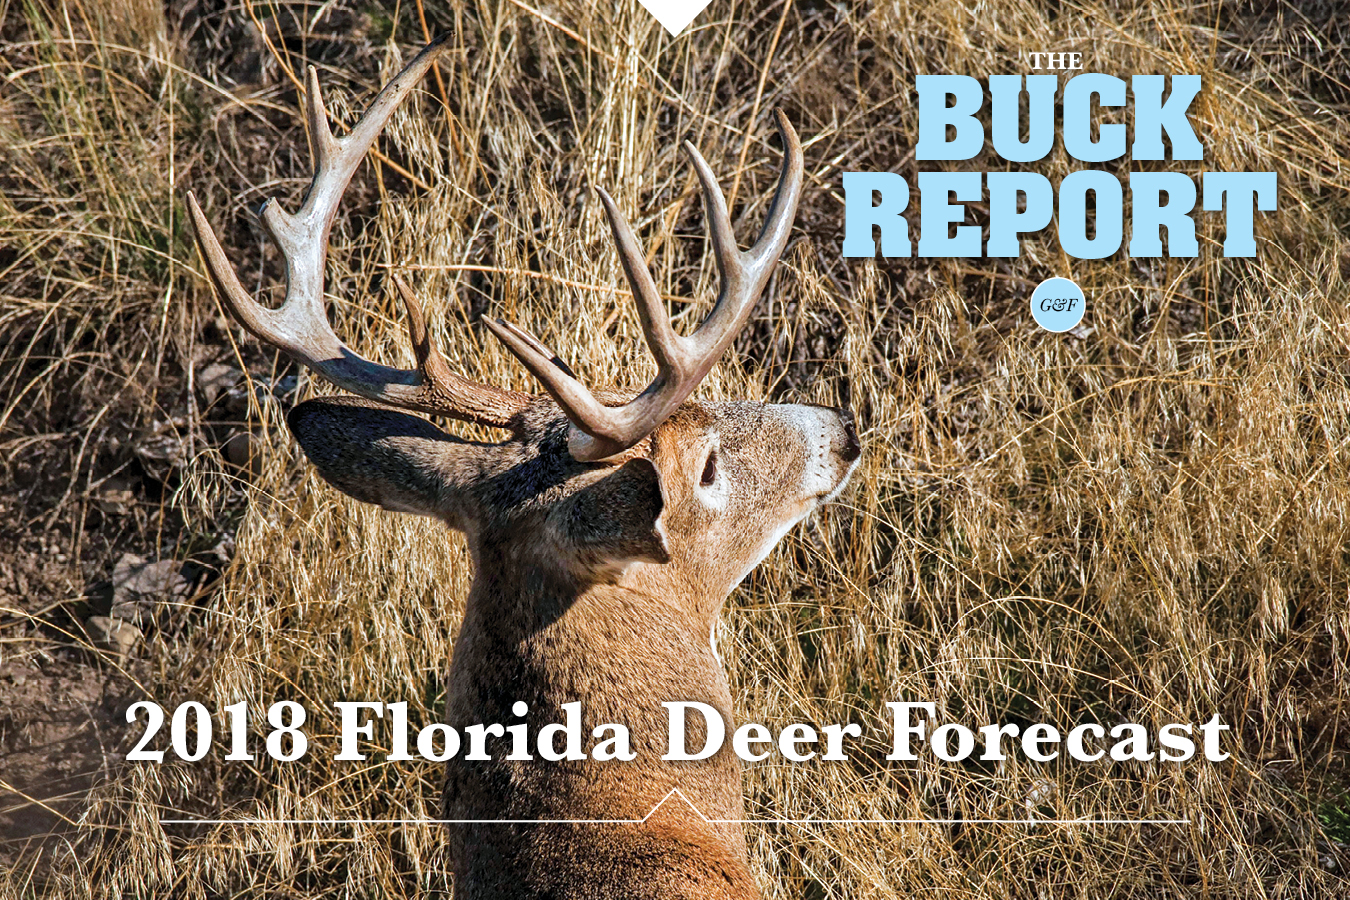 2018 Florida Deer Forecast